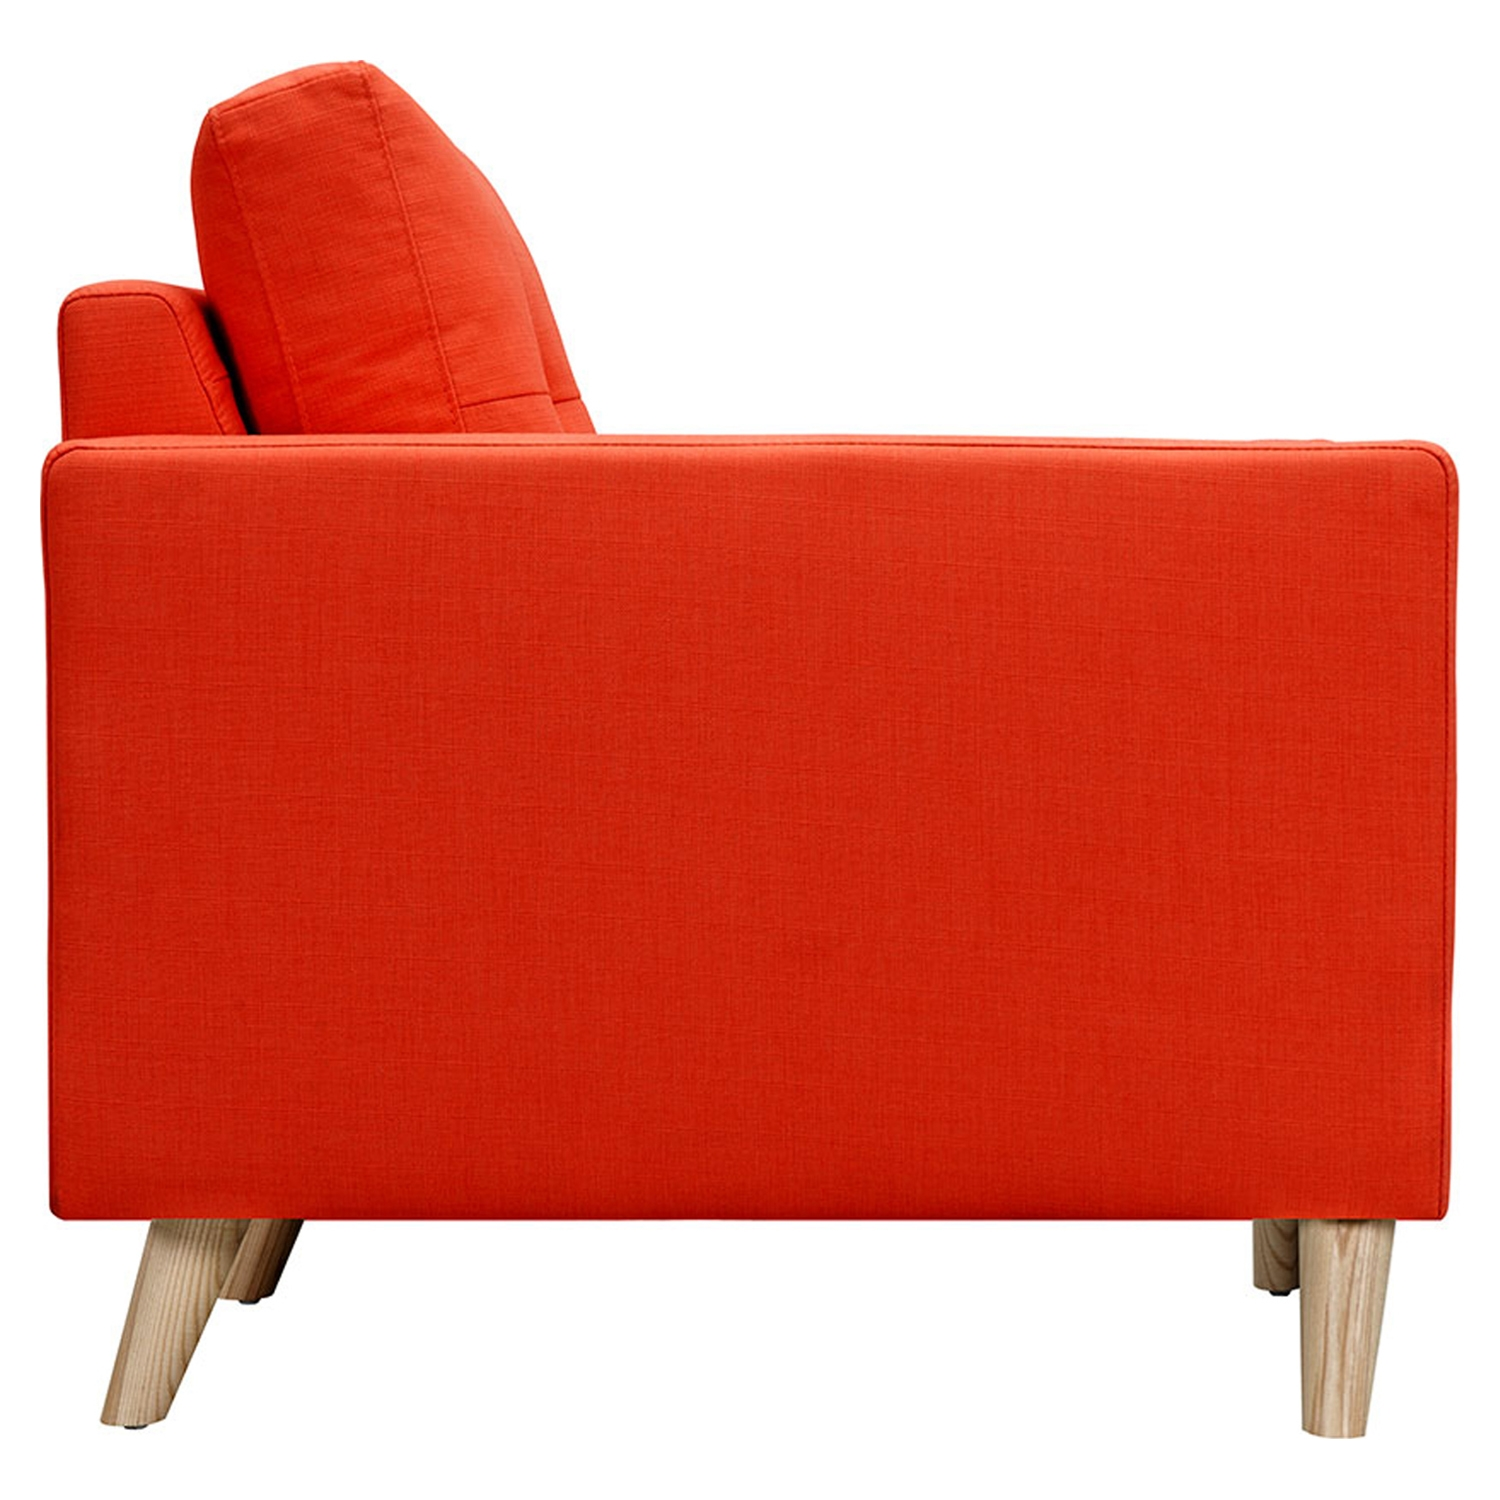 Uma Armchair - Retro Orange, Button Tufted - NYEK-223353